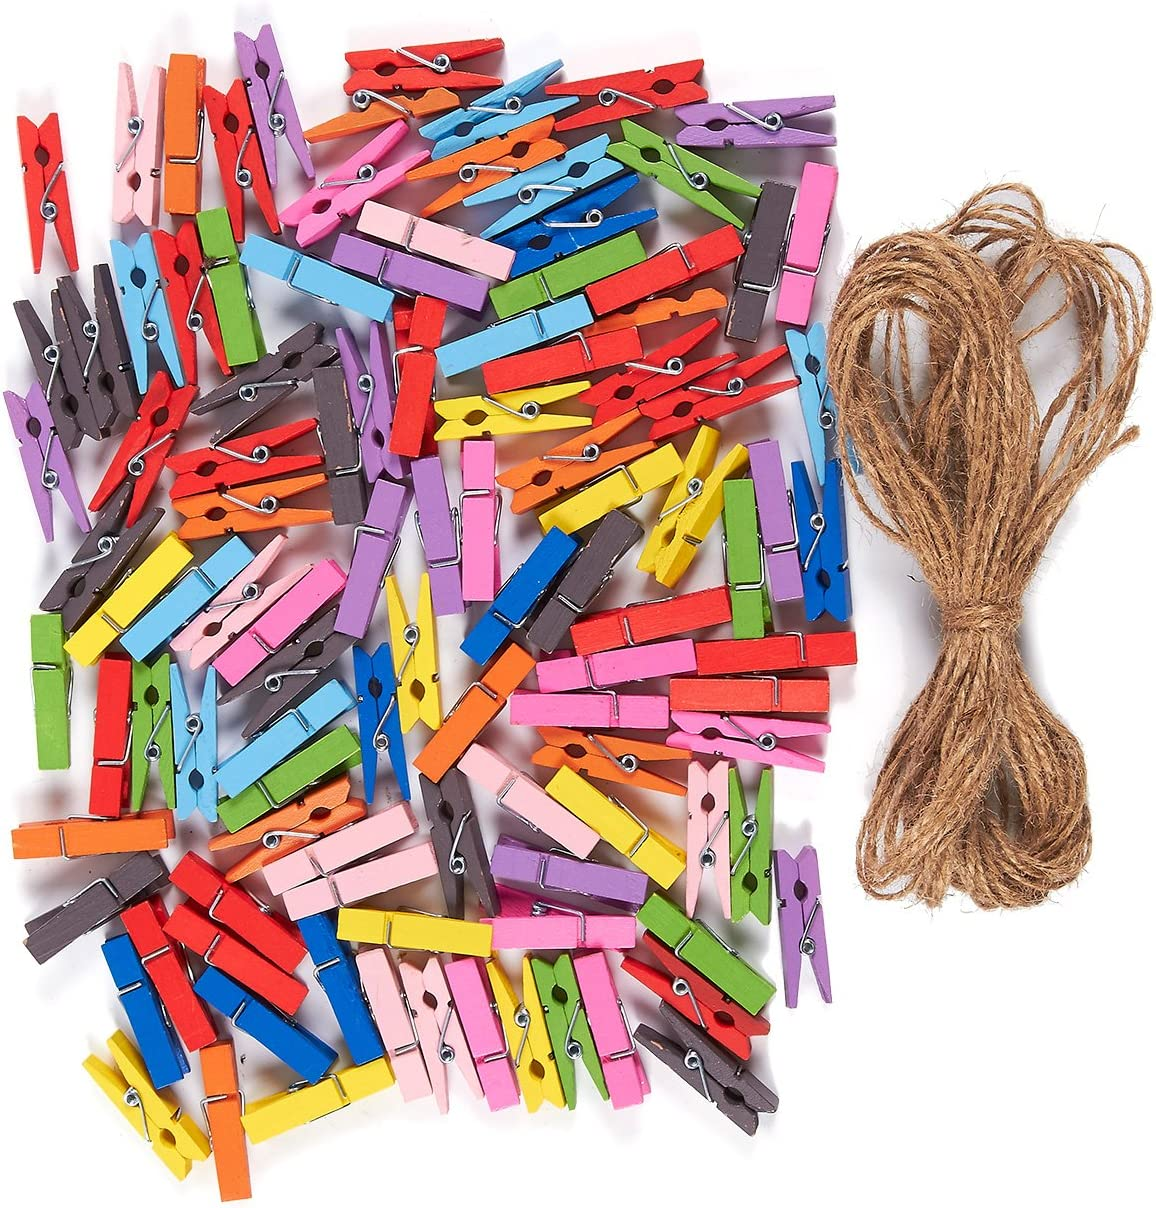 Mini Wooden Clothespins with Jute Twine for Crafts (1.4 in, 100 Pieces)